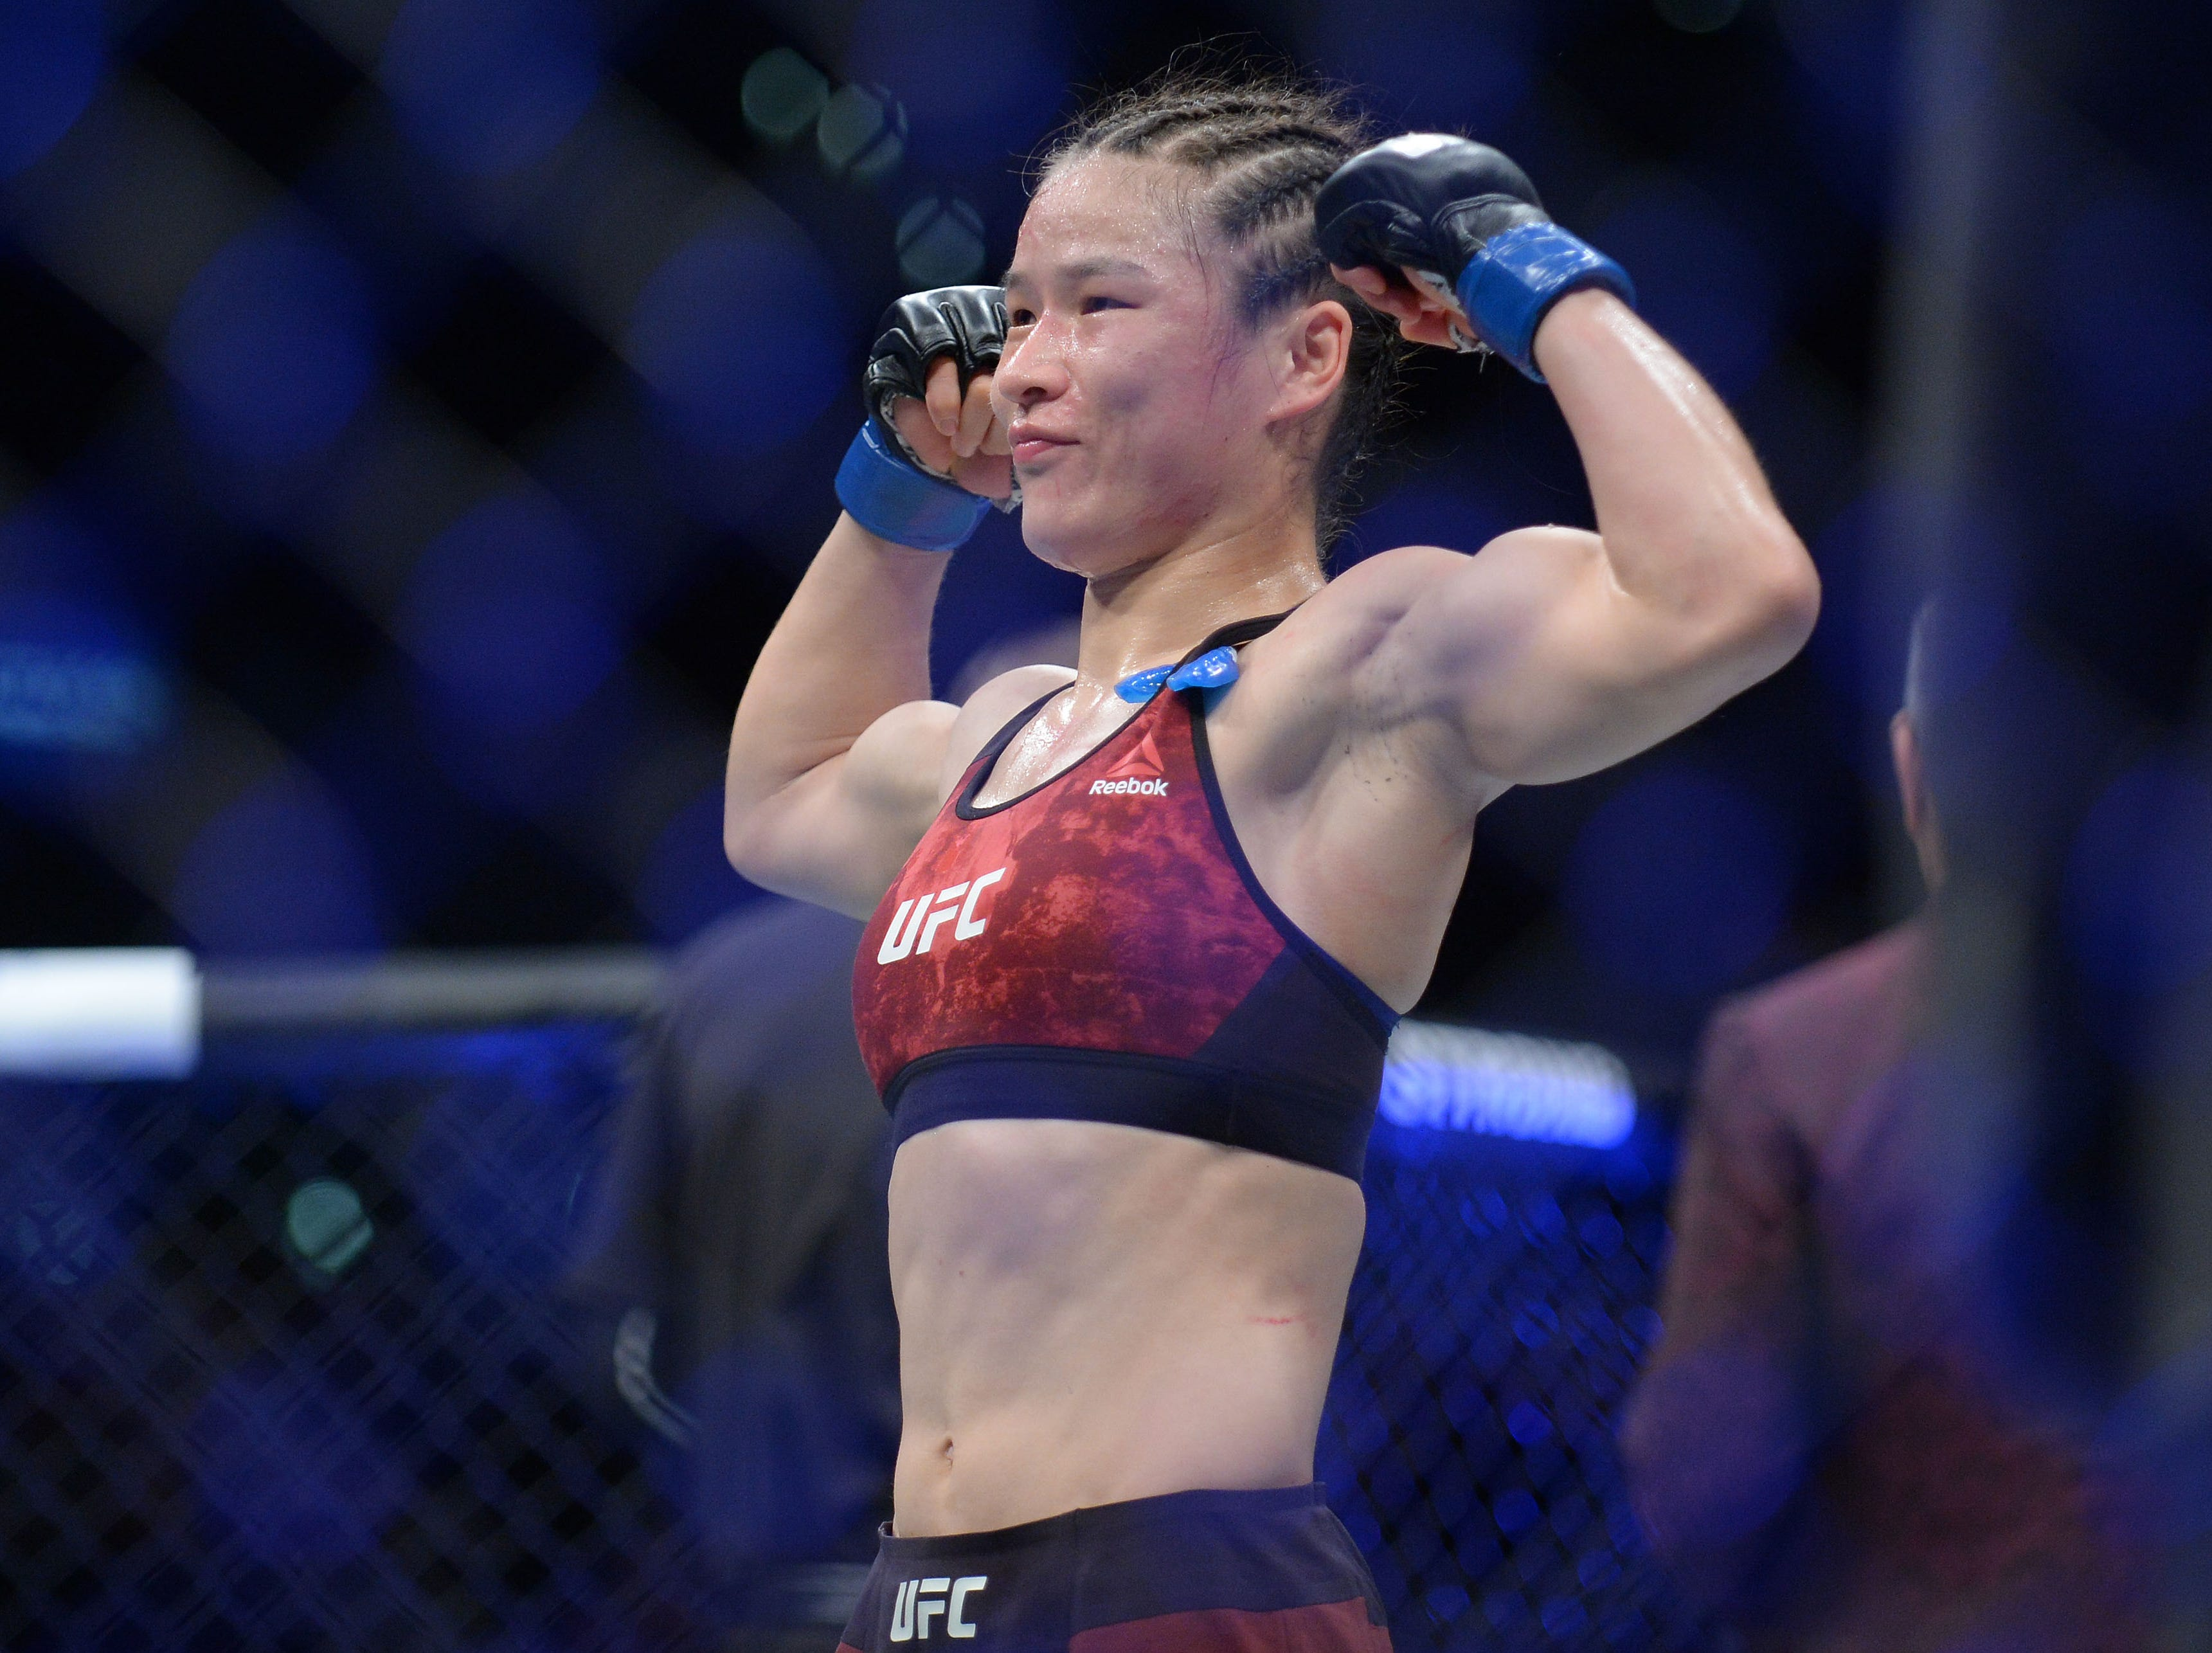 Weili Zhang reacts following her victory by decision against Danielle Taylor during UFC 227 at Staples Center.